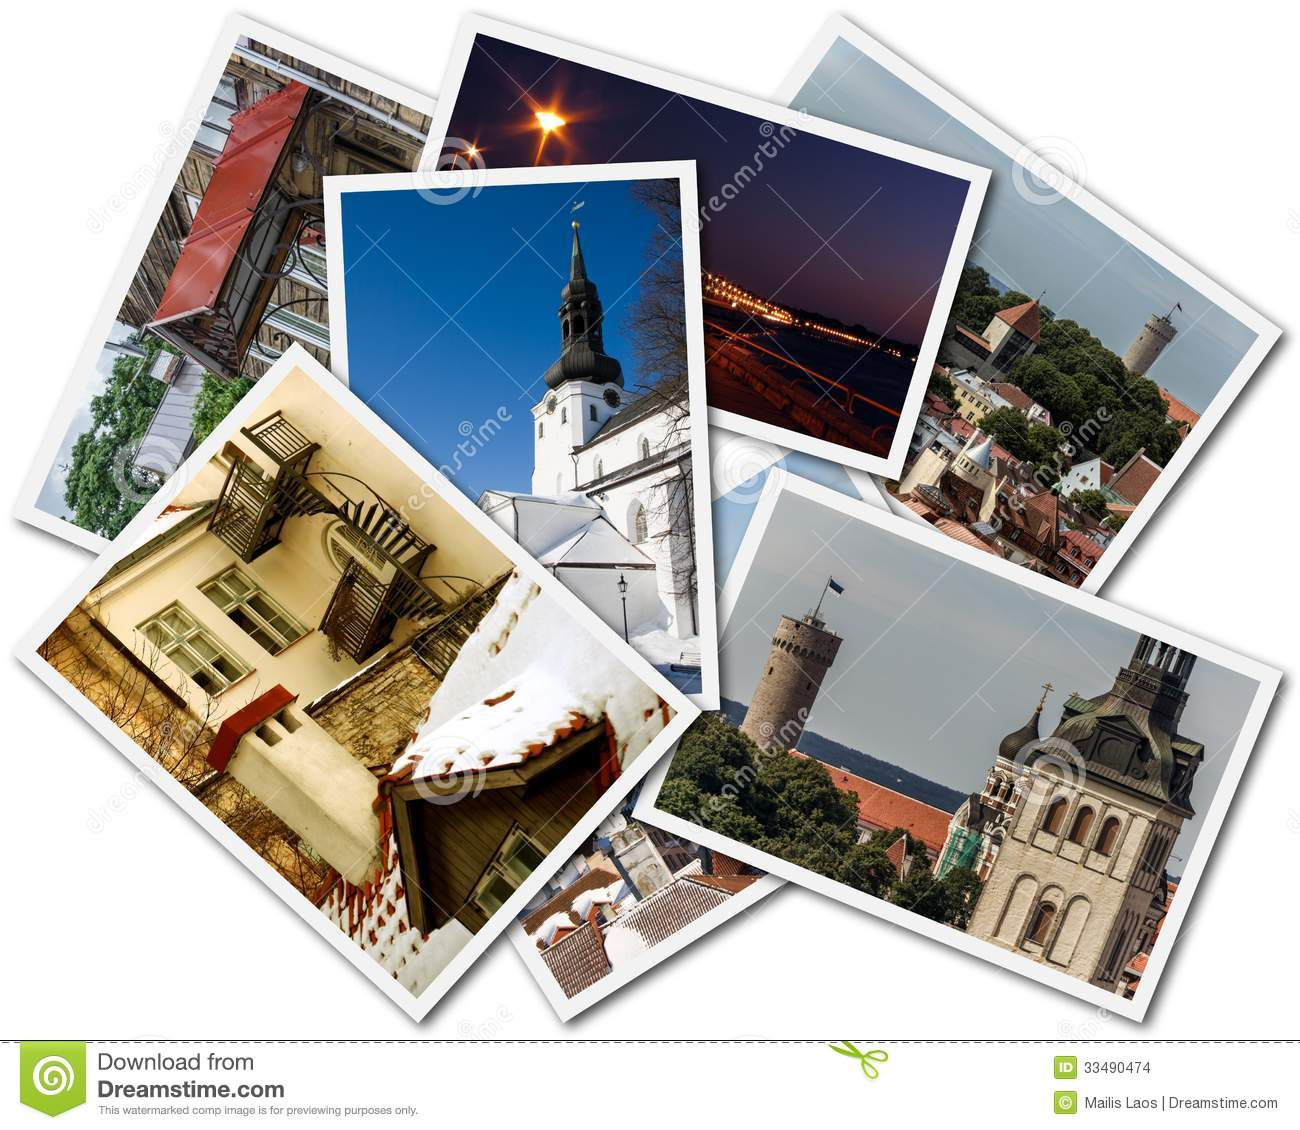 Download Tallinn Photos stock photo. Image of compilation, architecture - 33490474